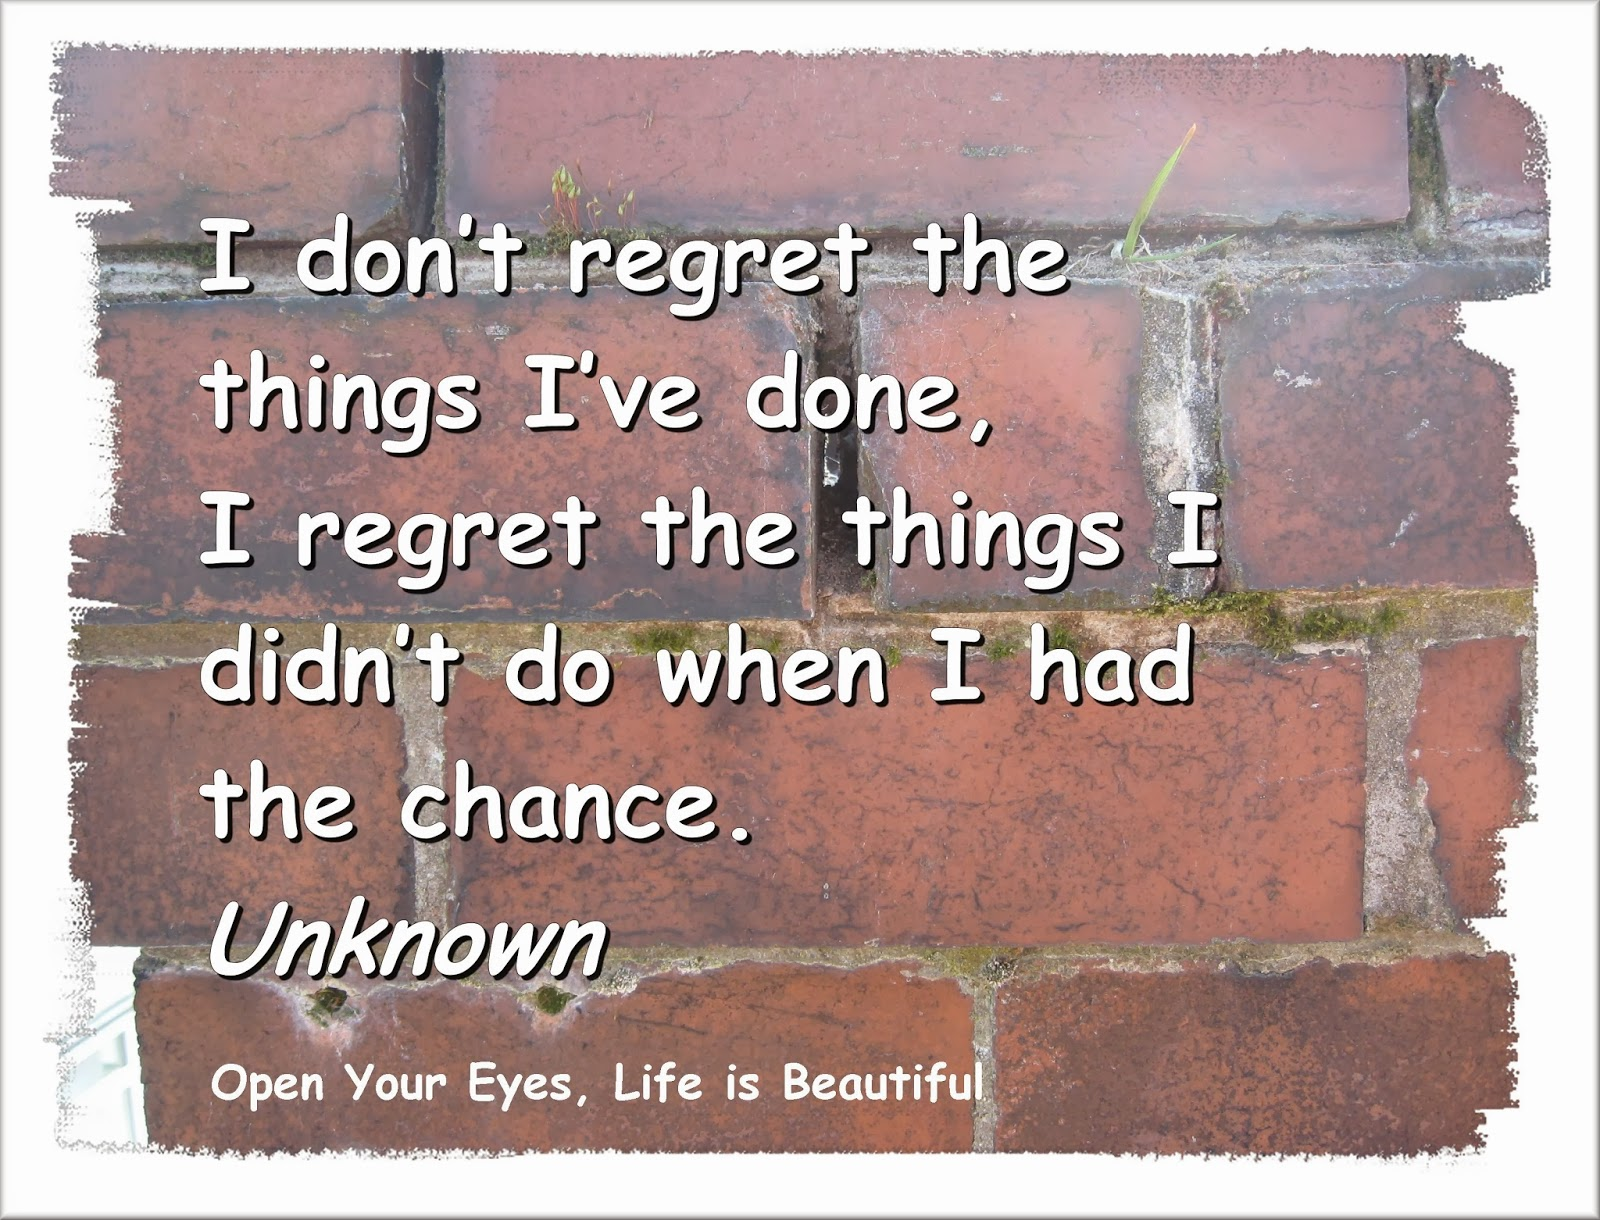 I I Done Dont Wen Do Regret Things Didnt Regret I I Have Things Had Chance I